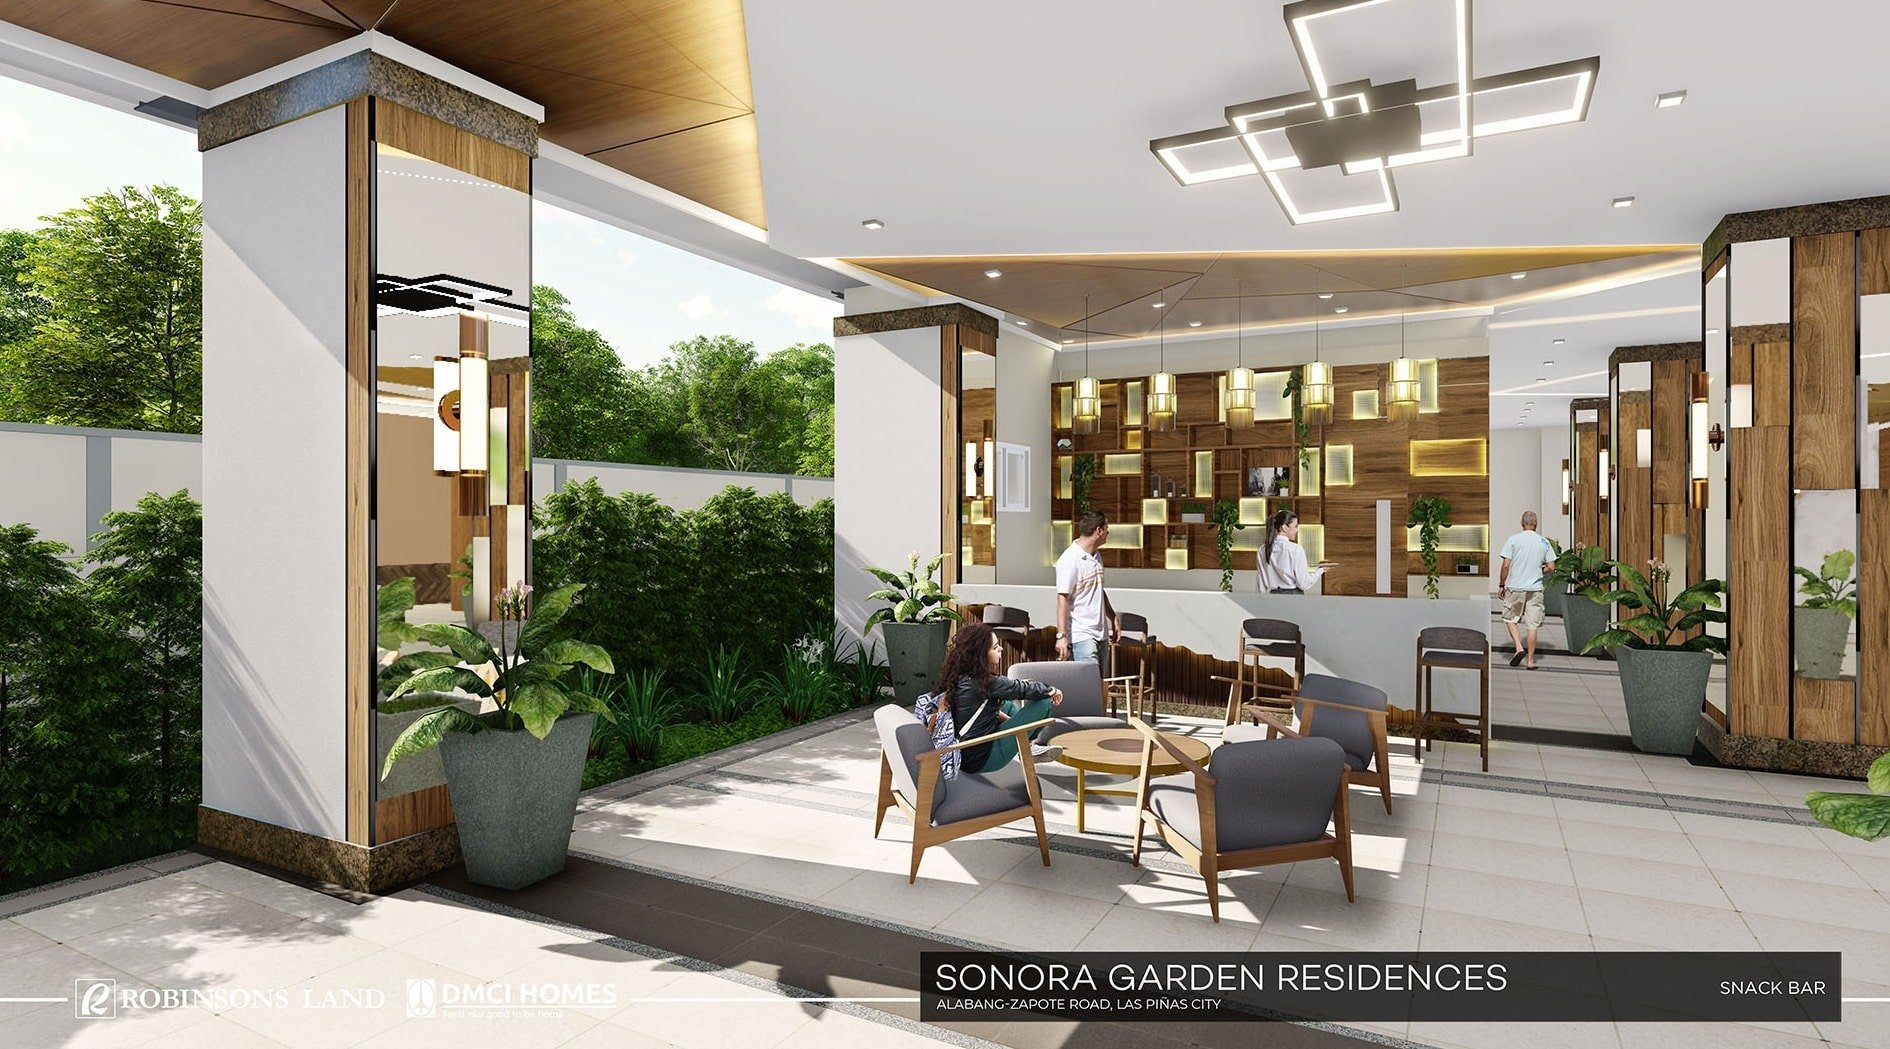 Sonora Garden Residences-Snack Bar-large